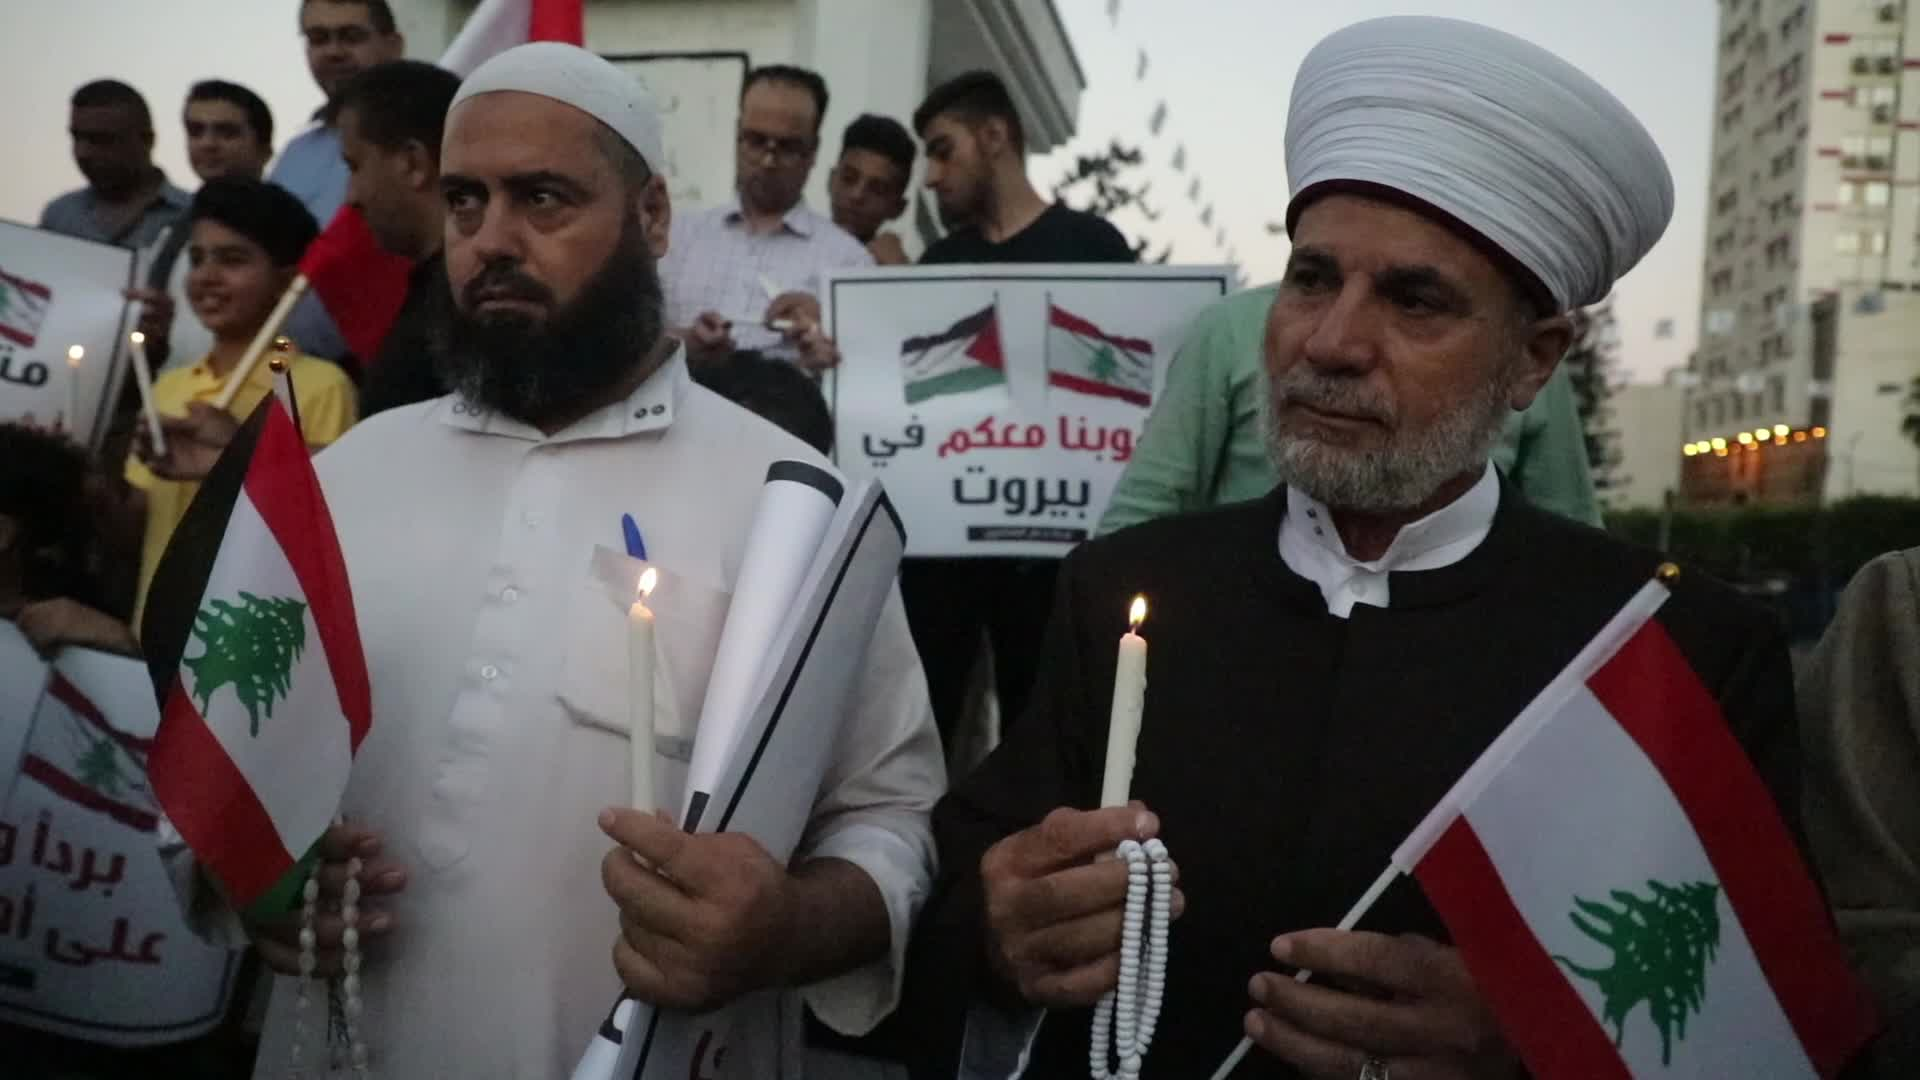 Candlelight vigil in support of Lebanese community following the explosions at Beirut port